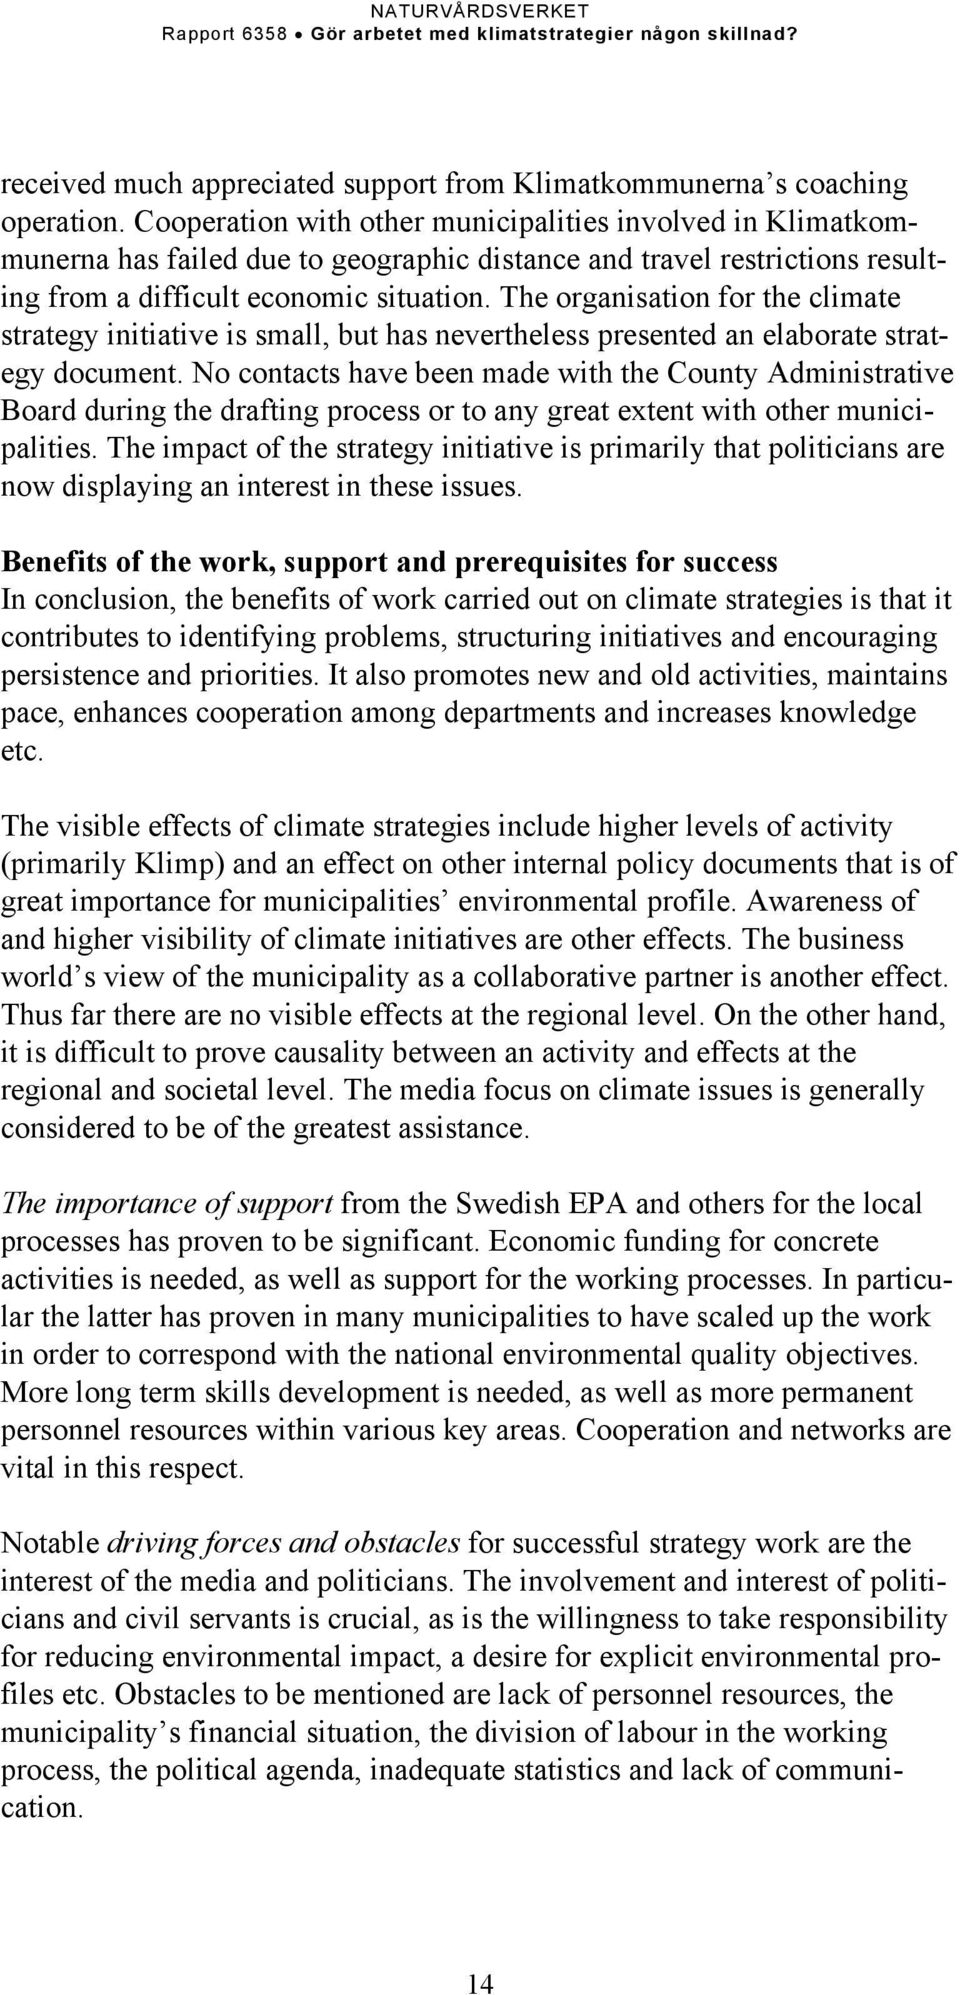 The organisation for the climate strategy initiative is small, but has nevertheless presented an elaborate strategy document.